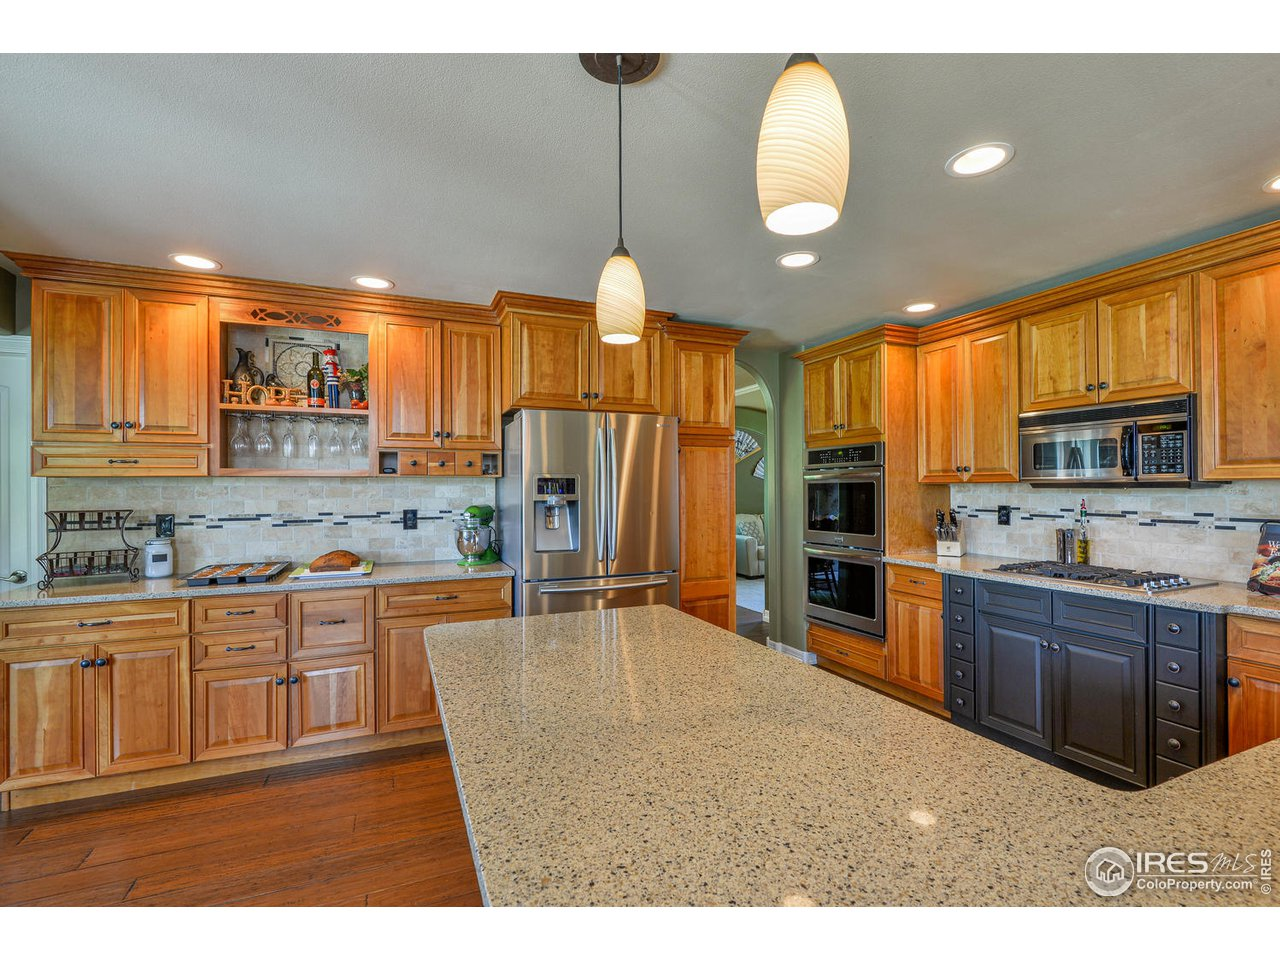 Bakers dream kitchen with ample counter space